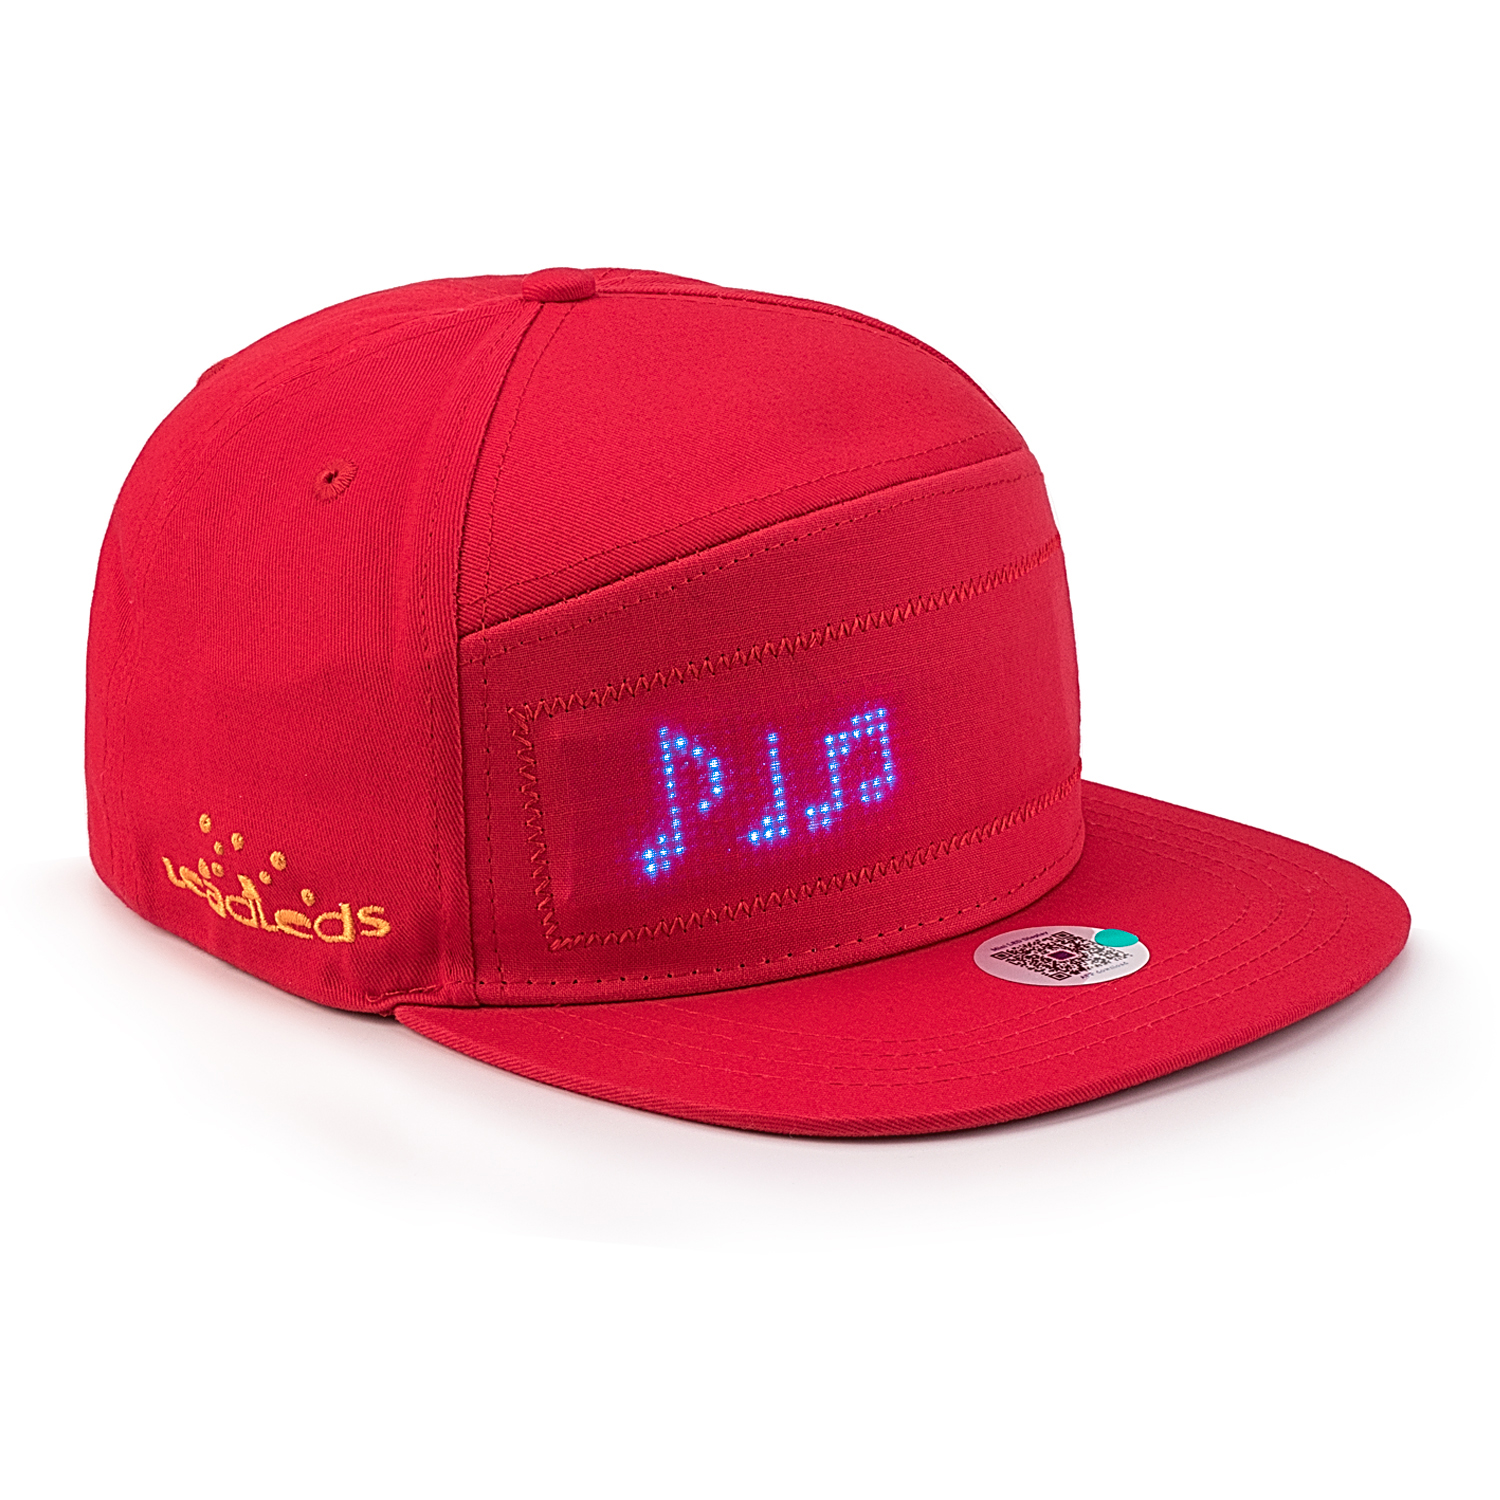 Bluetooth LED Hat Programmable Scrolling Message Display Board Baseball Cap Hip Hop Hip-hop Party Parade Golf Fishing Cap